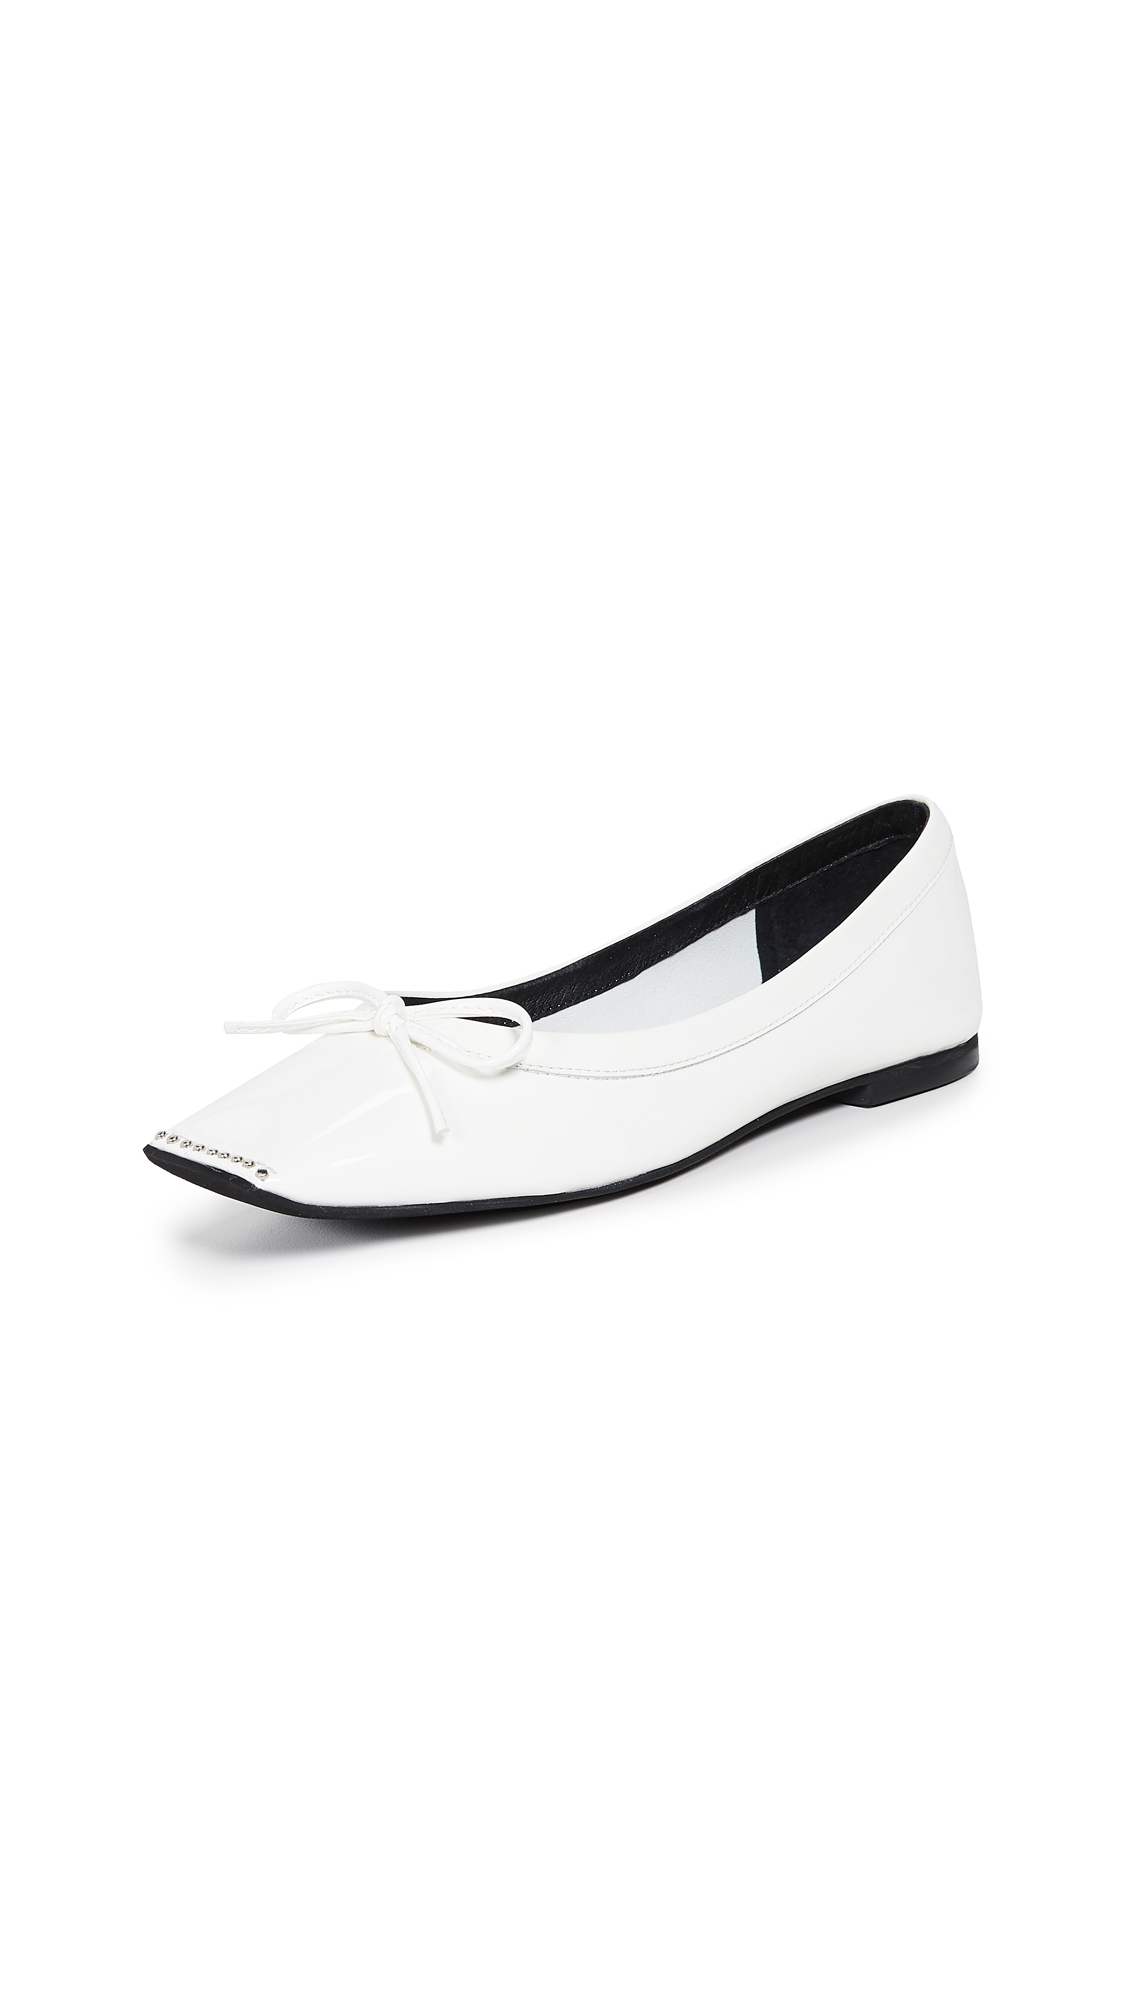 Jeffrey Campbell Achira Square Toe Flats - White